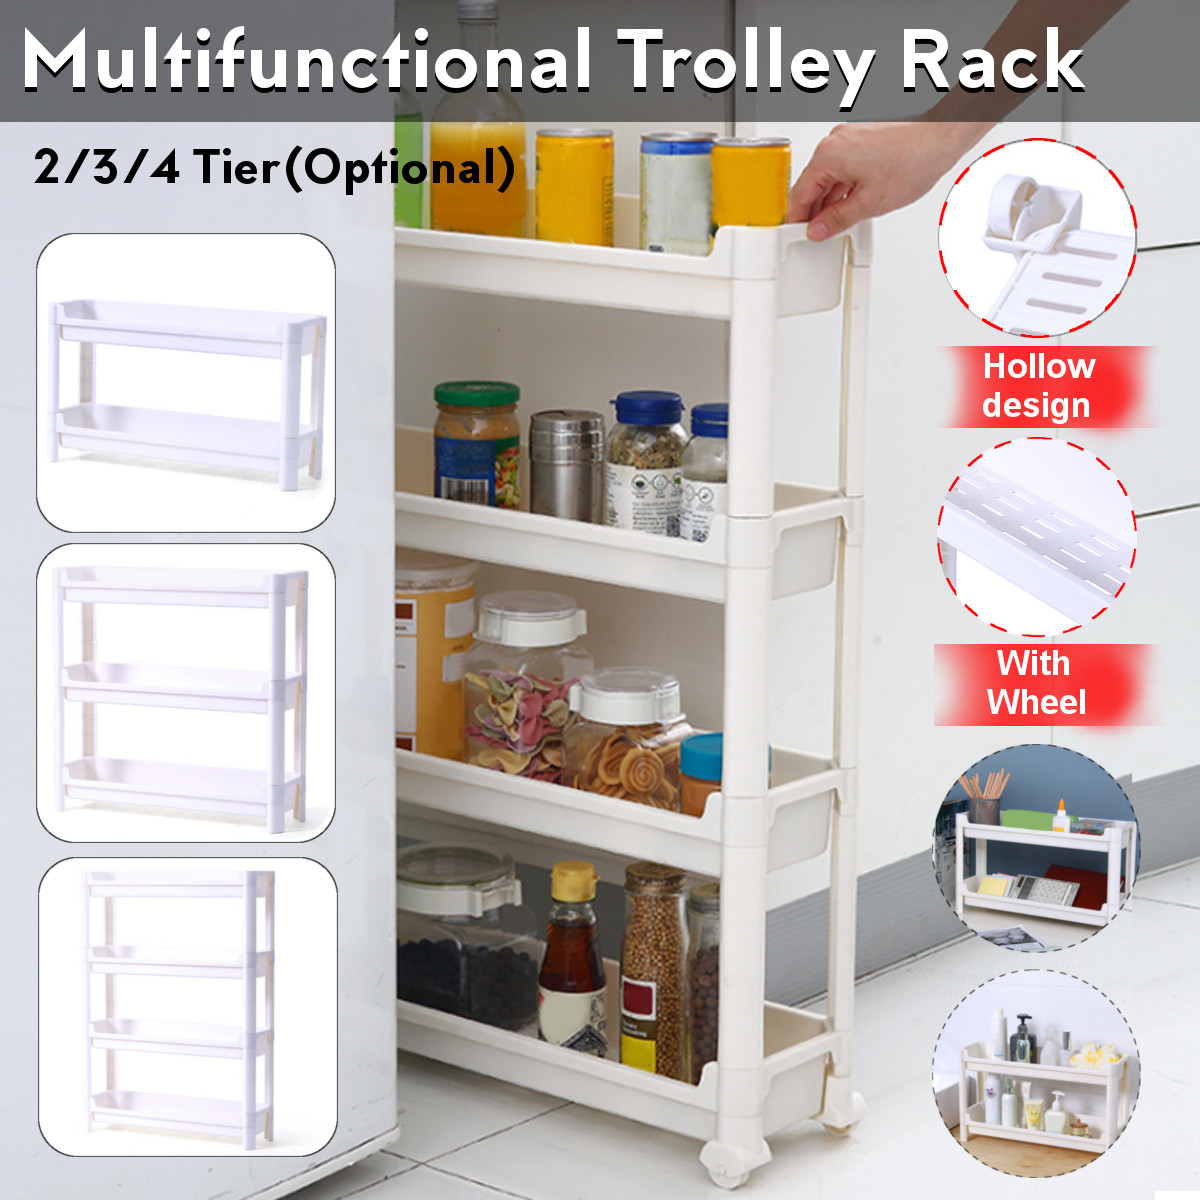 3 4 tier slide out rolling cart kitchen can and spice racks trolley storage rack with wheels shelf cart organizer shelving for home kitchen bathroom